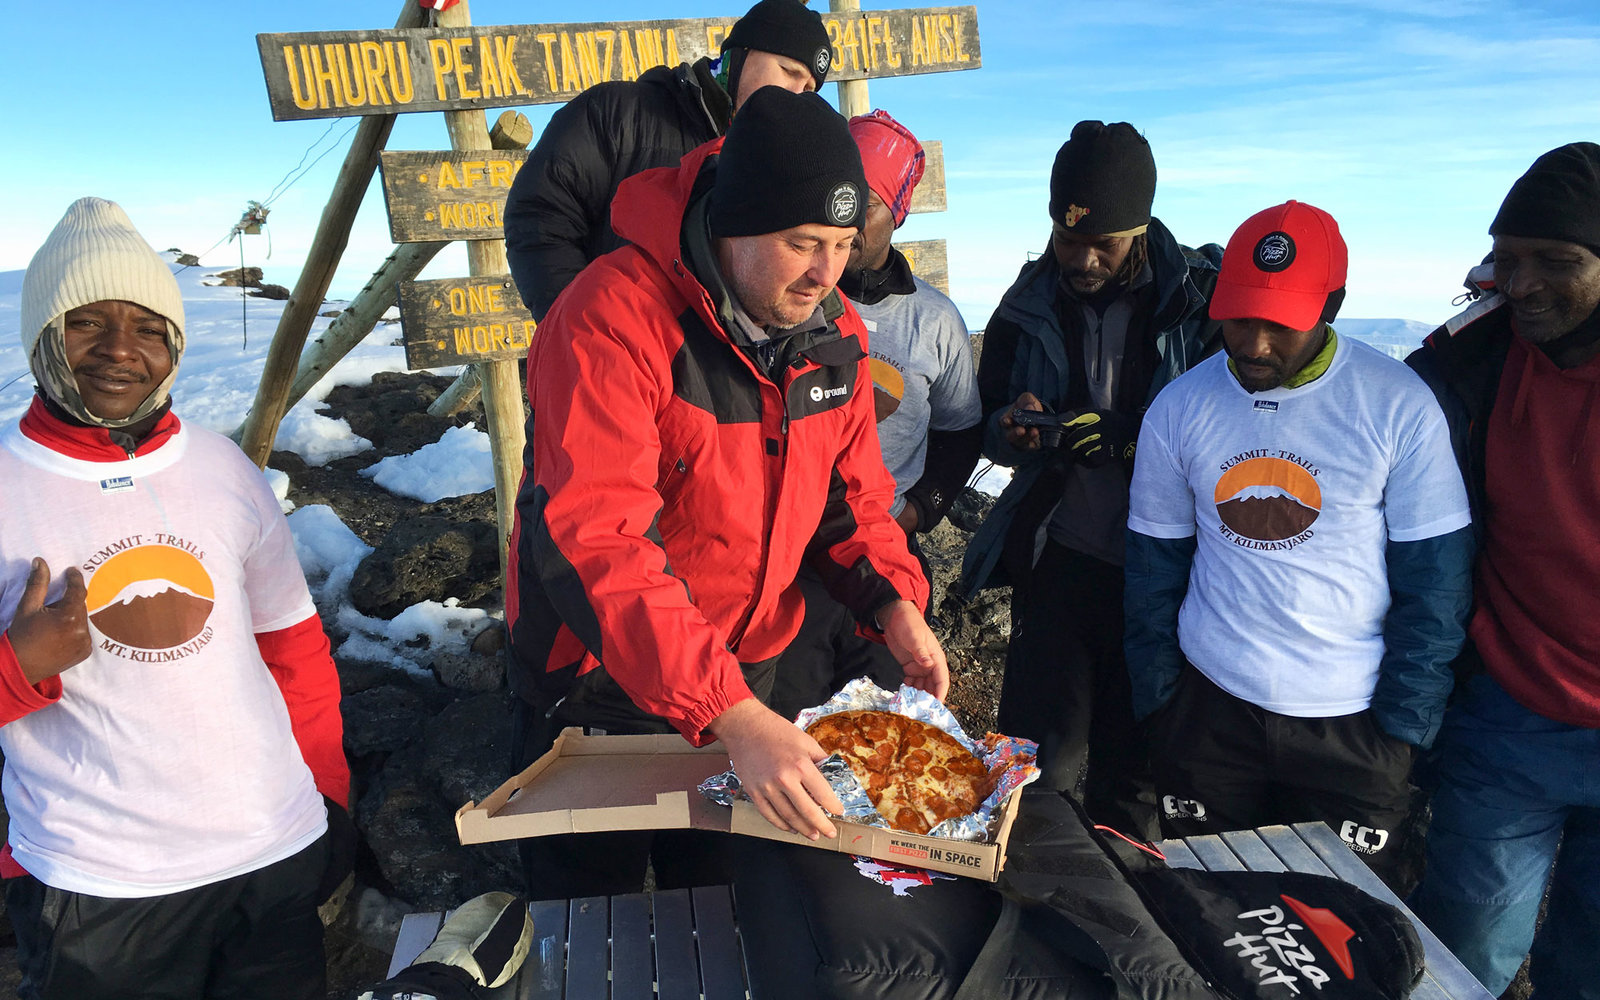 pizza hut just delivered a pizza to the top of mt kilimanjaro